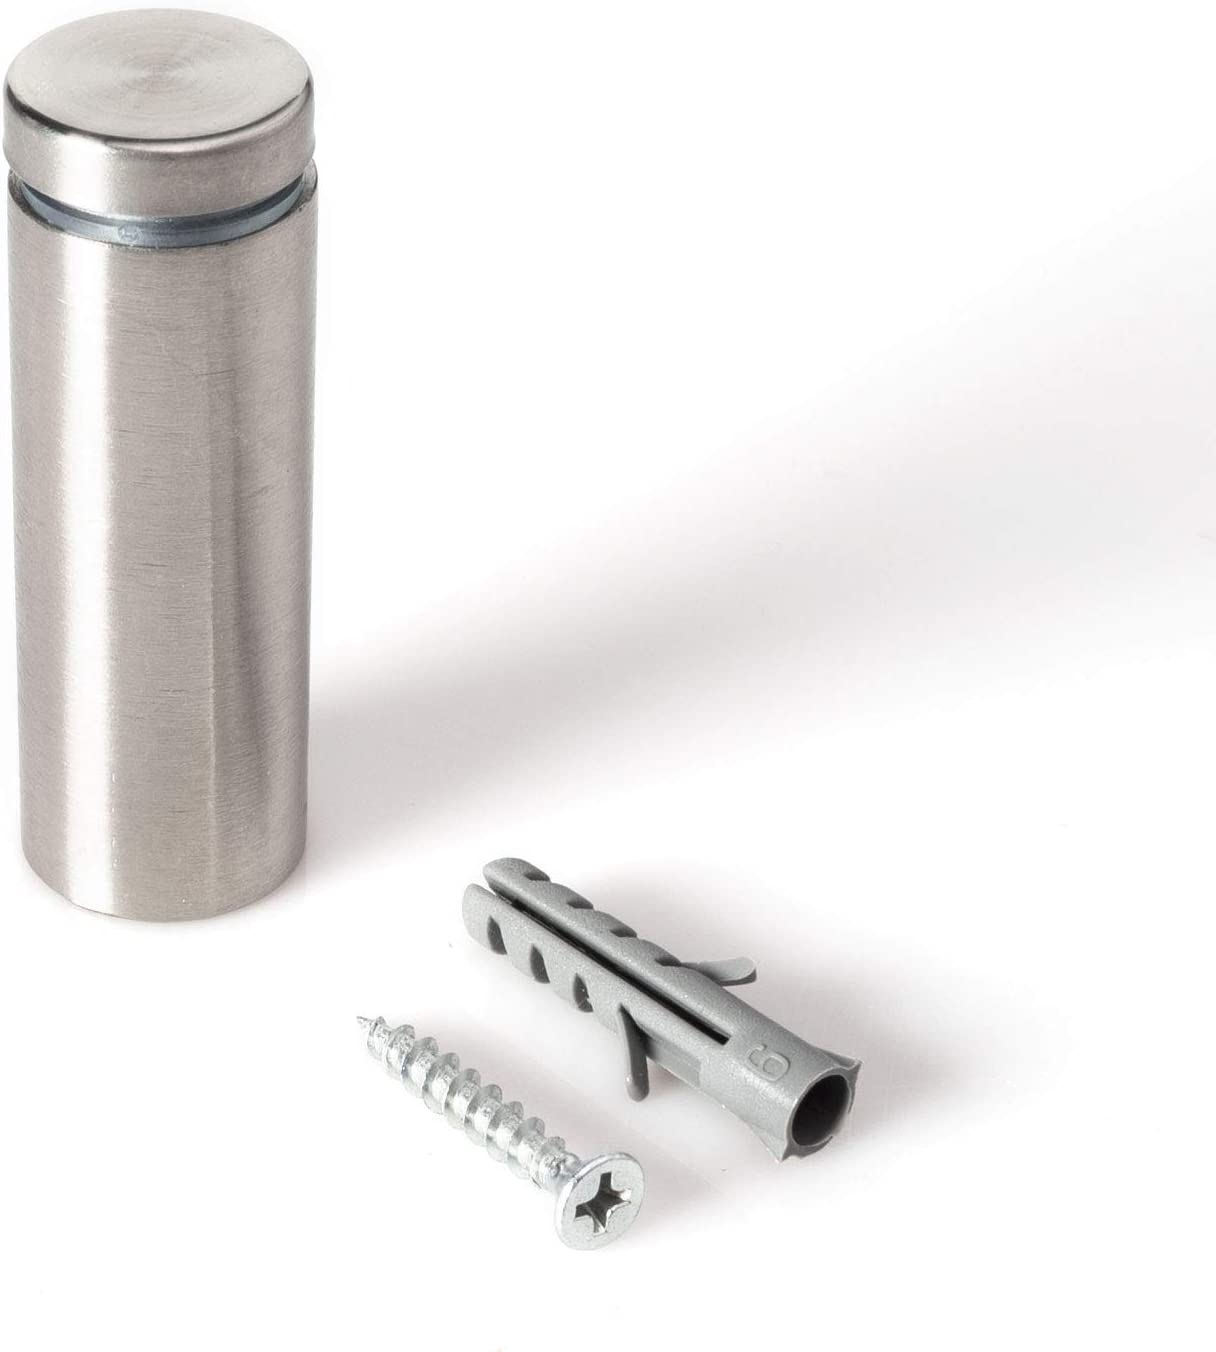 Stainless Steel Standoff 3//4 Inch Diameter x 2 Inch Barrel Length Brushed Finish for PVC Glass and Acrylic Sign Stand Off Wall Anchors and Screws 2 Piece Small Sign Pack